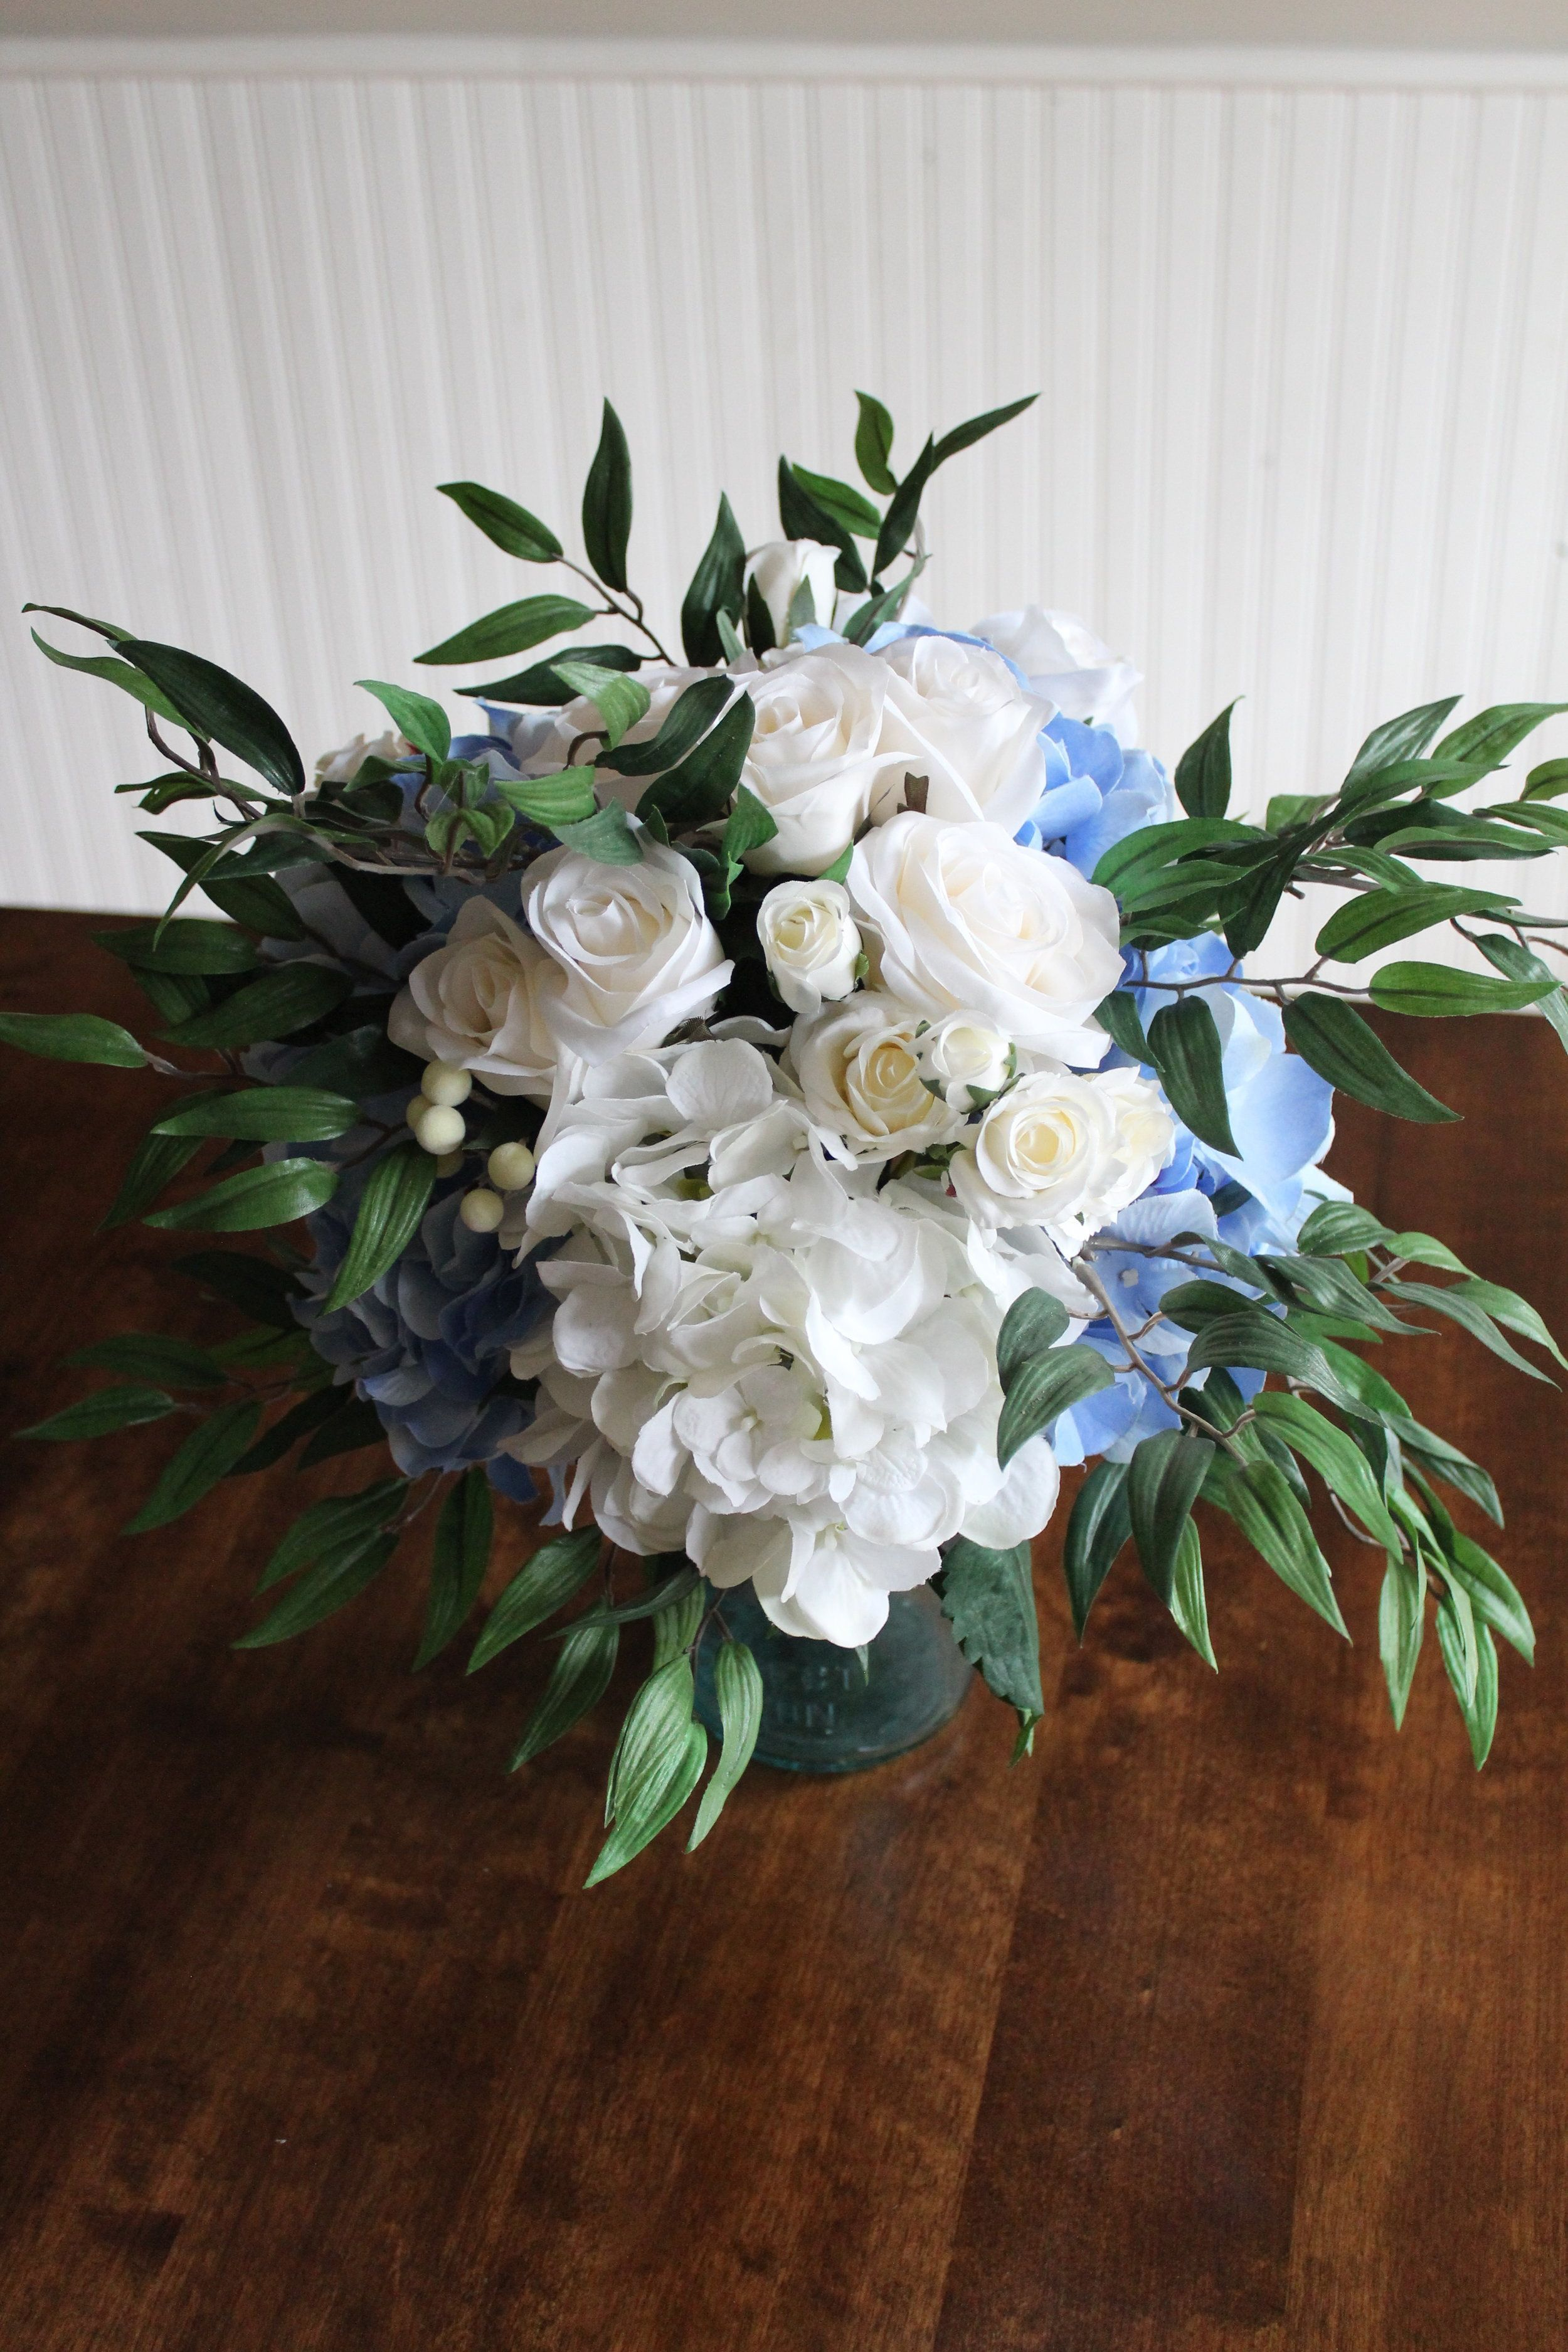 Silk Bridal Bouquet Recreation in Ivory and Blue #silkbridalbouquet Silk Bridal Bouquet Recreation in Ivory and Blue #silkbridalbouquet